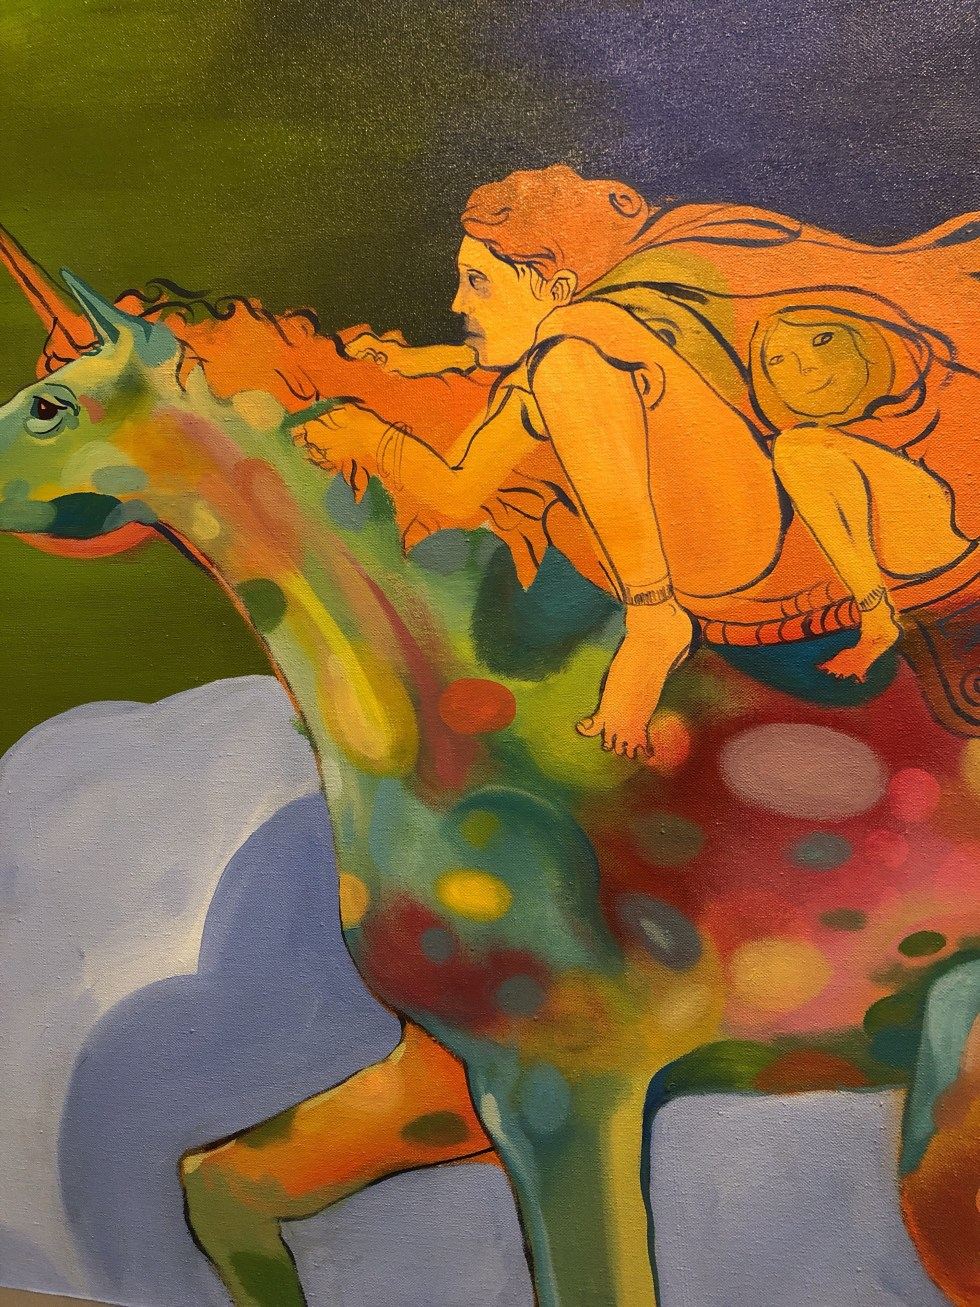 Painting of riding on a unicorn